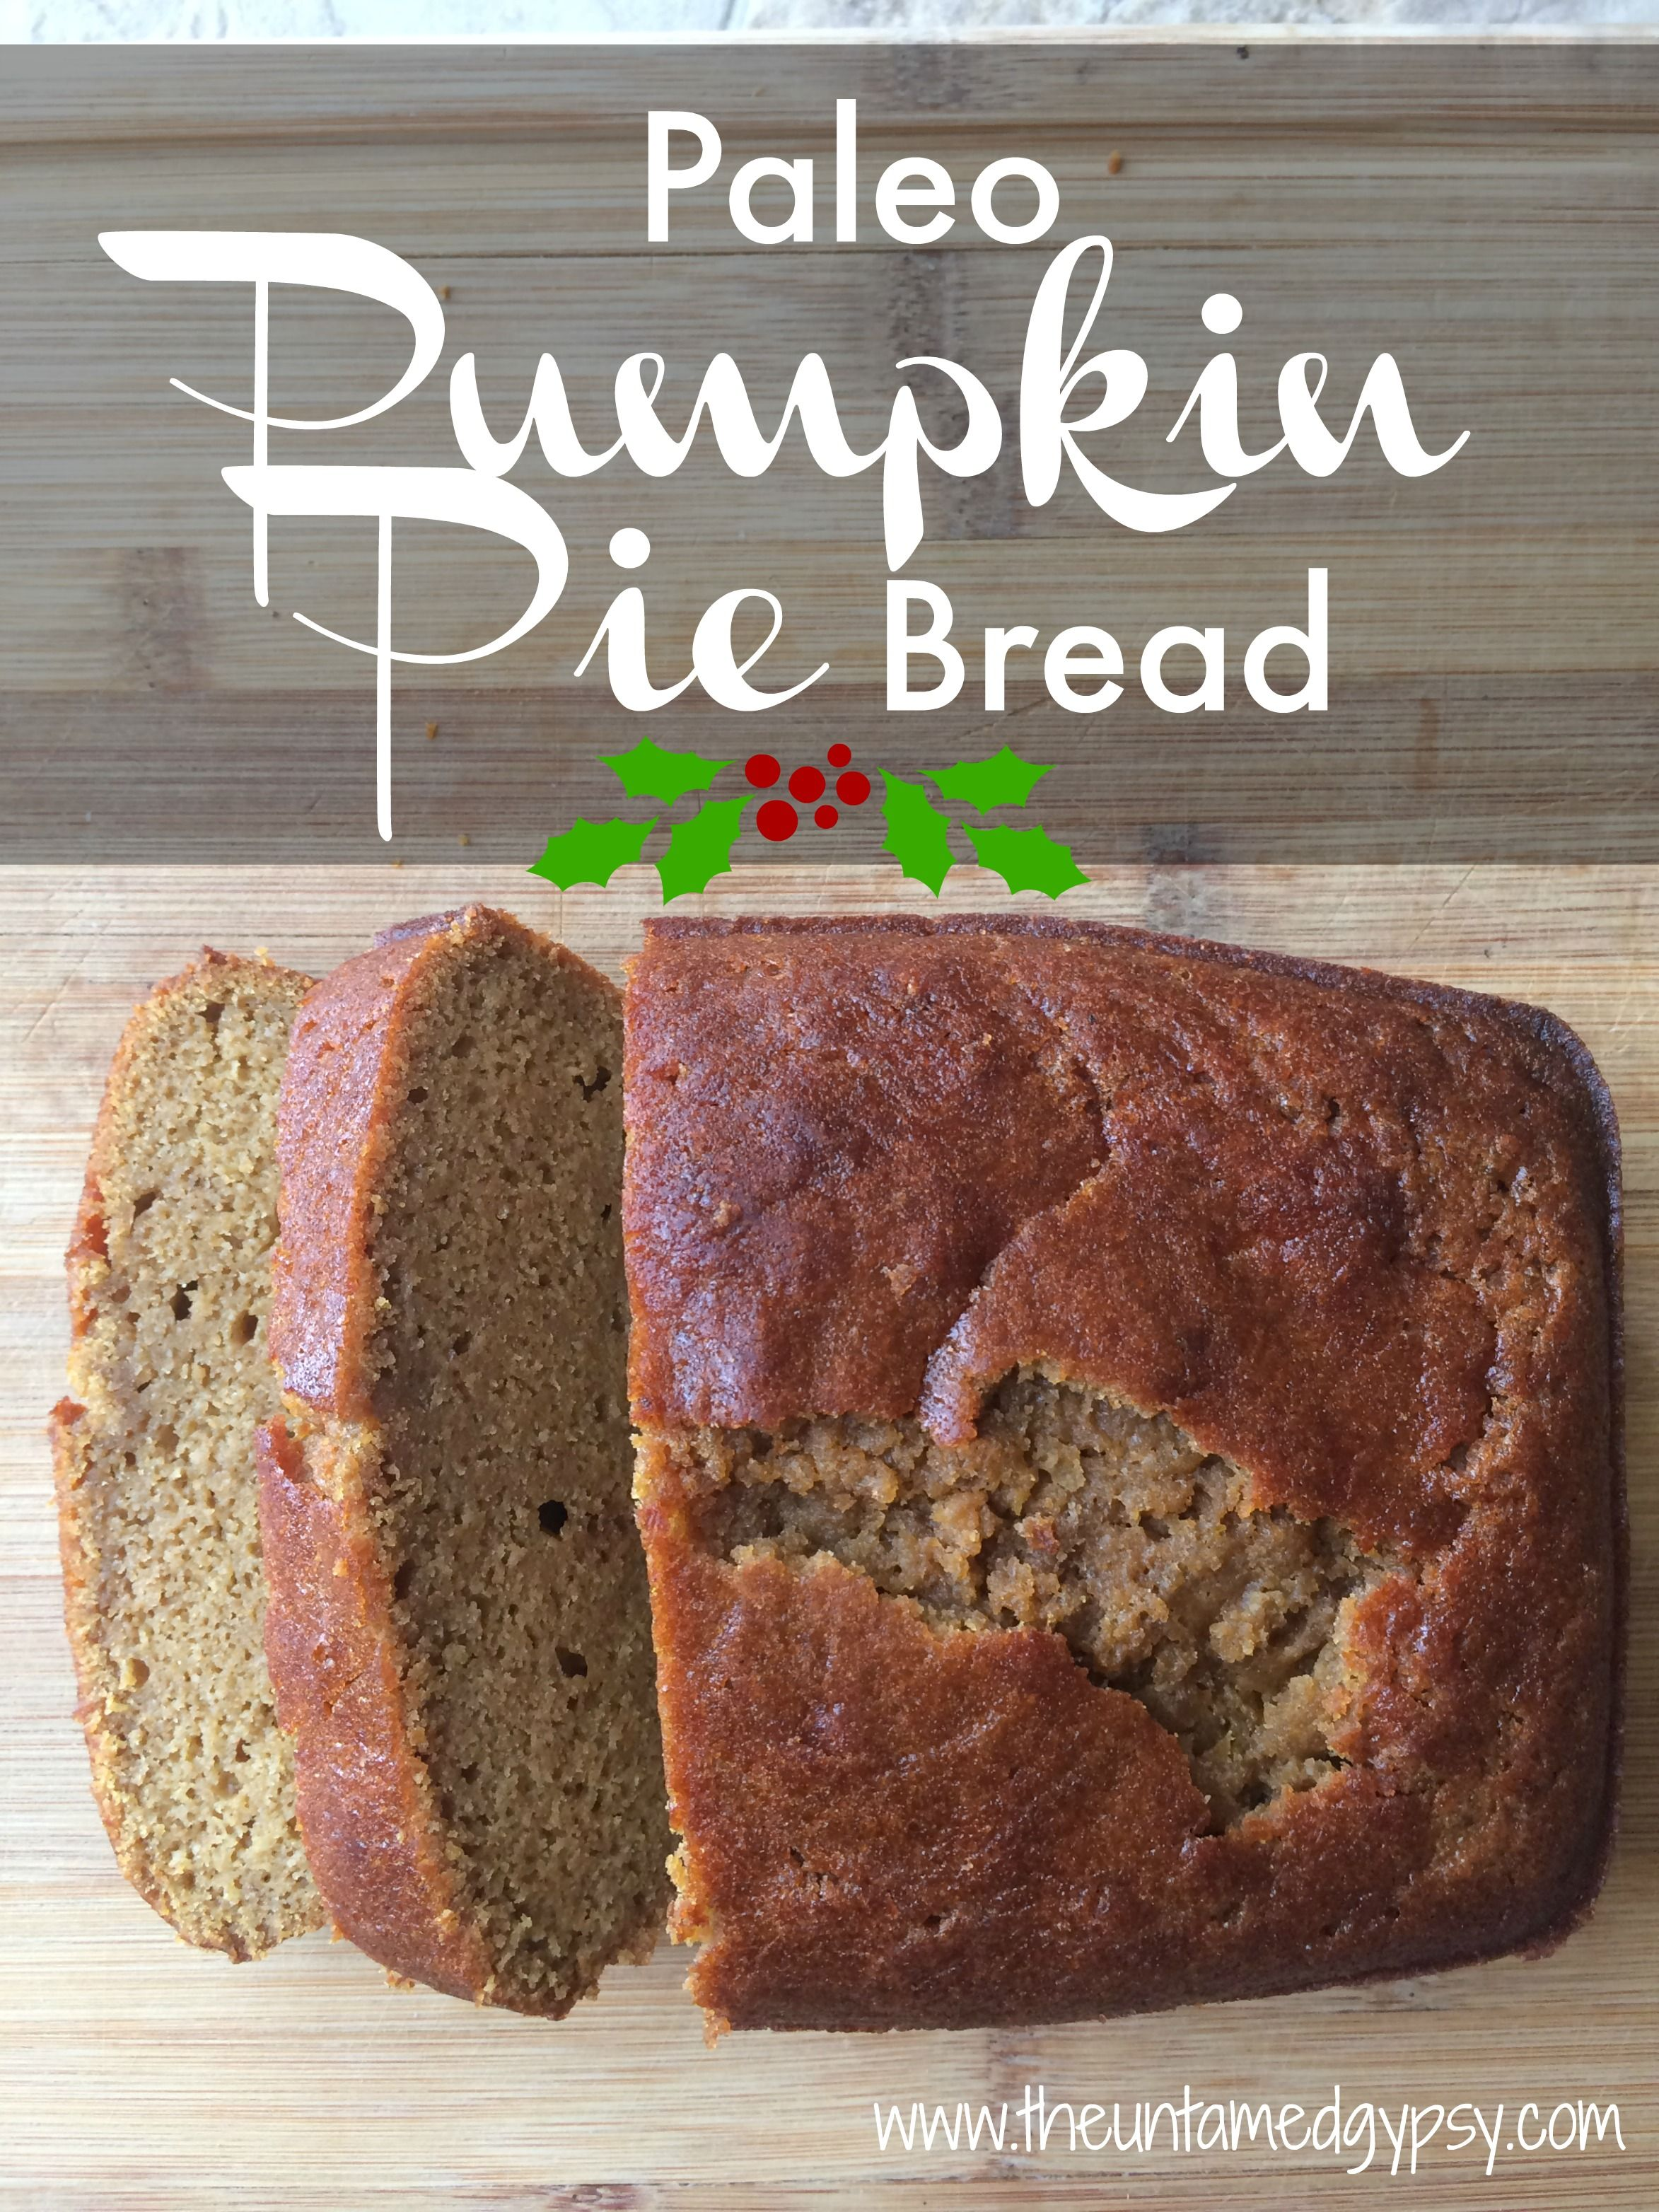 This paleo pumpkin pie bread is lightly sweet and SUPER moist inside, with a nice firmer pie-crusty type texture on the outside.  It holds up well when cool, and when eaten warm it has this beautiful almost creamy (not doughy) texture that is simply heaven in your mouth!  Plus it's insanely quick and easy: it only takes a spoon, a bowl, and a bread pan and you are good to go- no need to bring out all the kitchen appliances for this paleo treat!